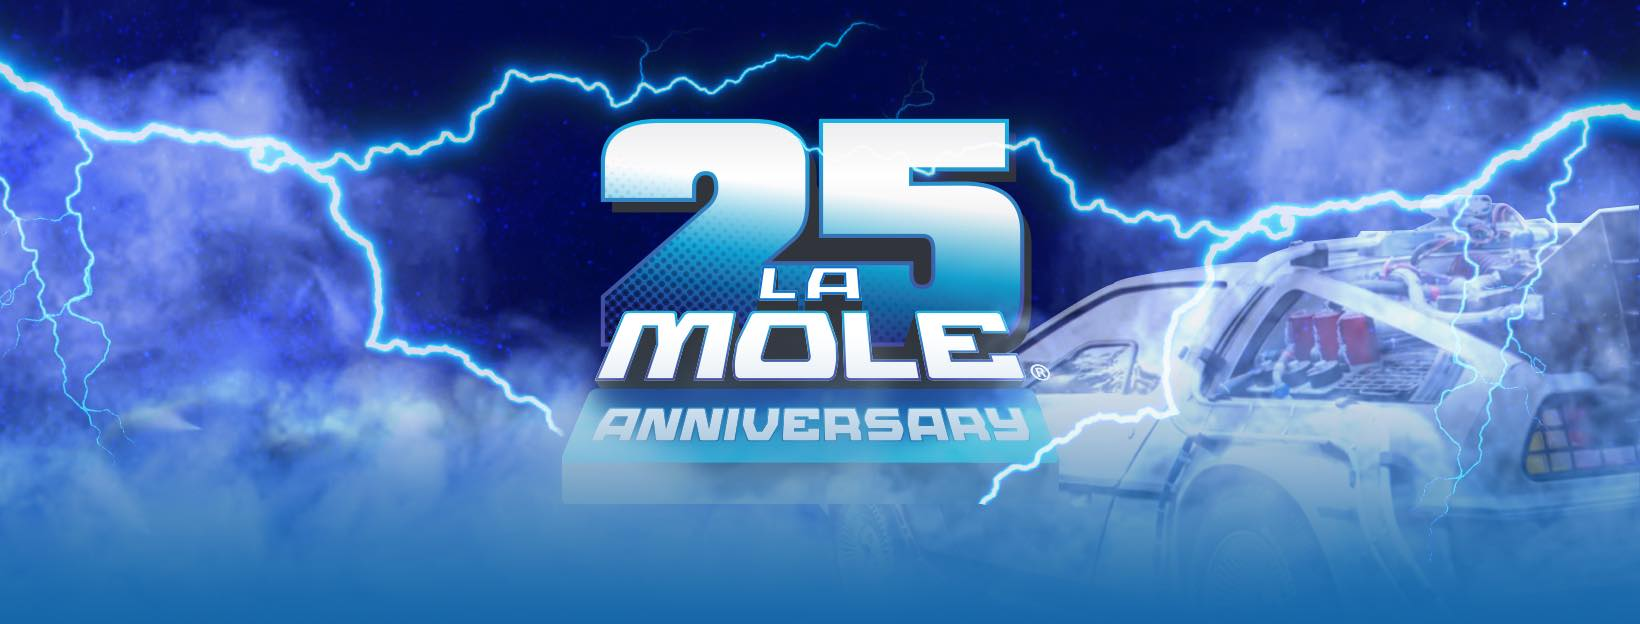 Celebrarán 25 años de La Mole Convention